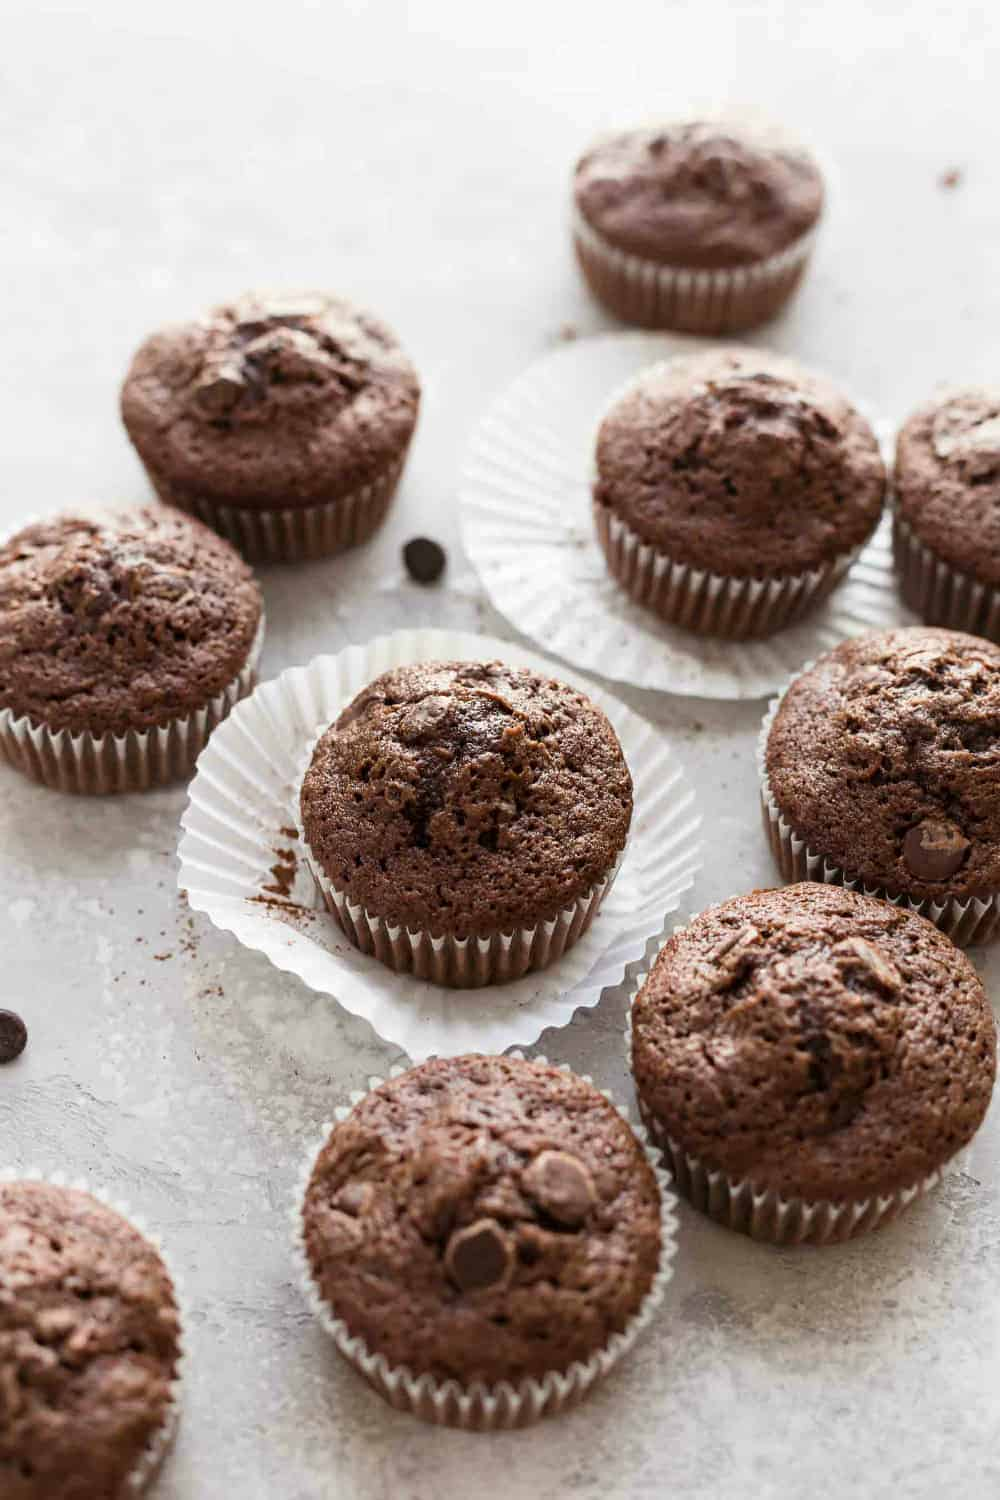 Baked chocolate zucchini muffins in white paper liners on a white surface